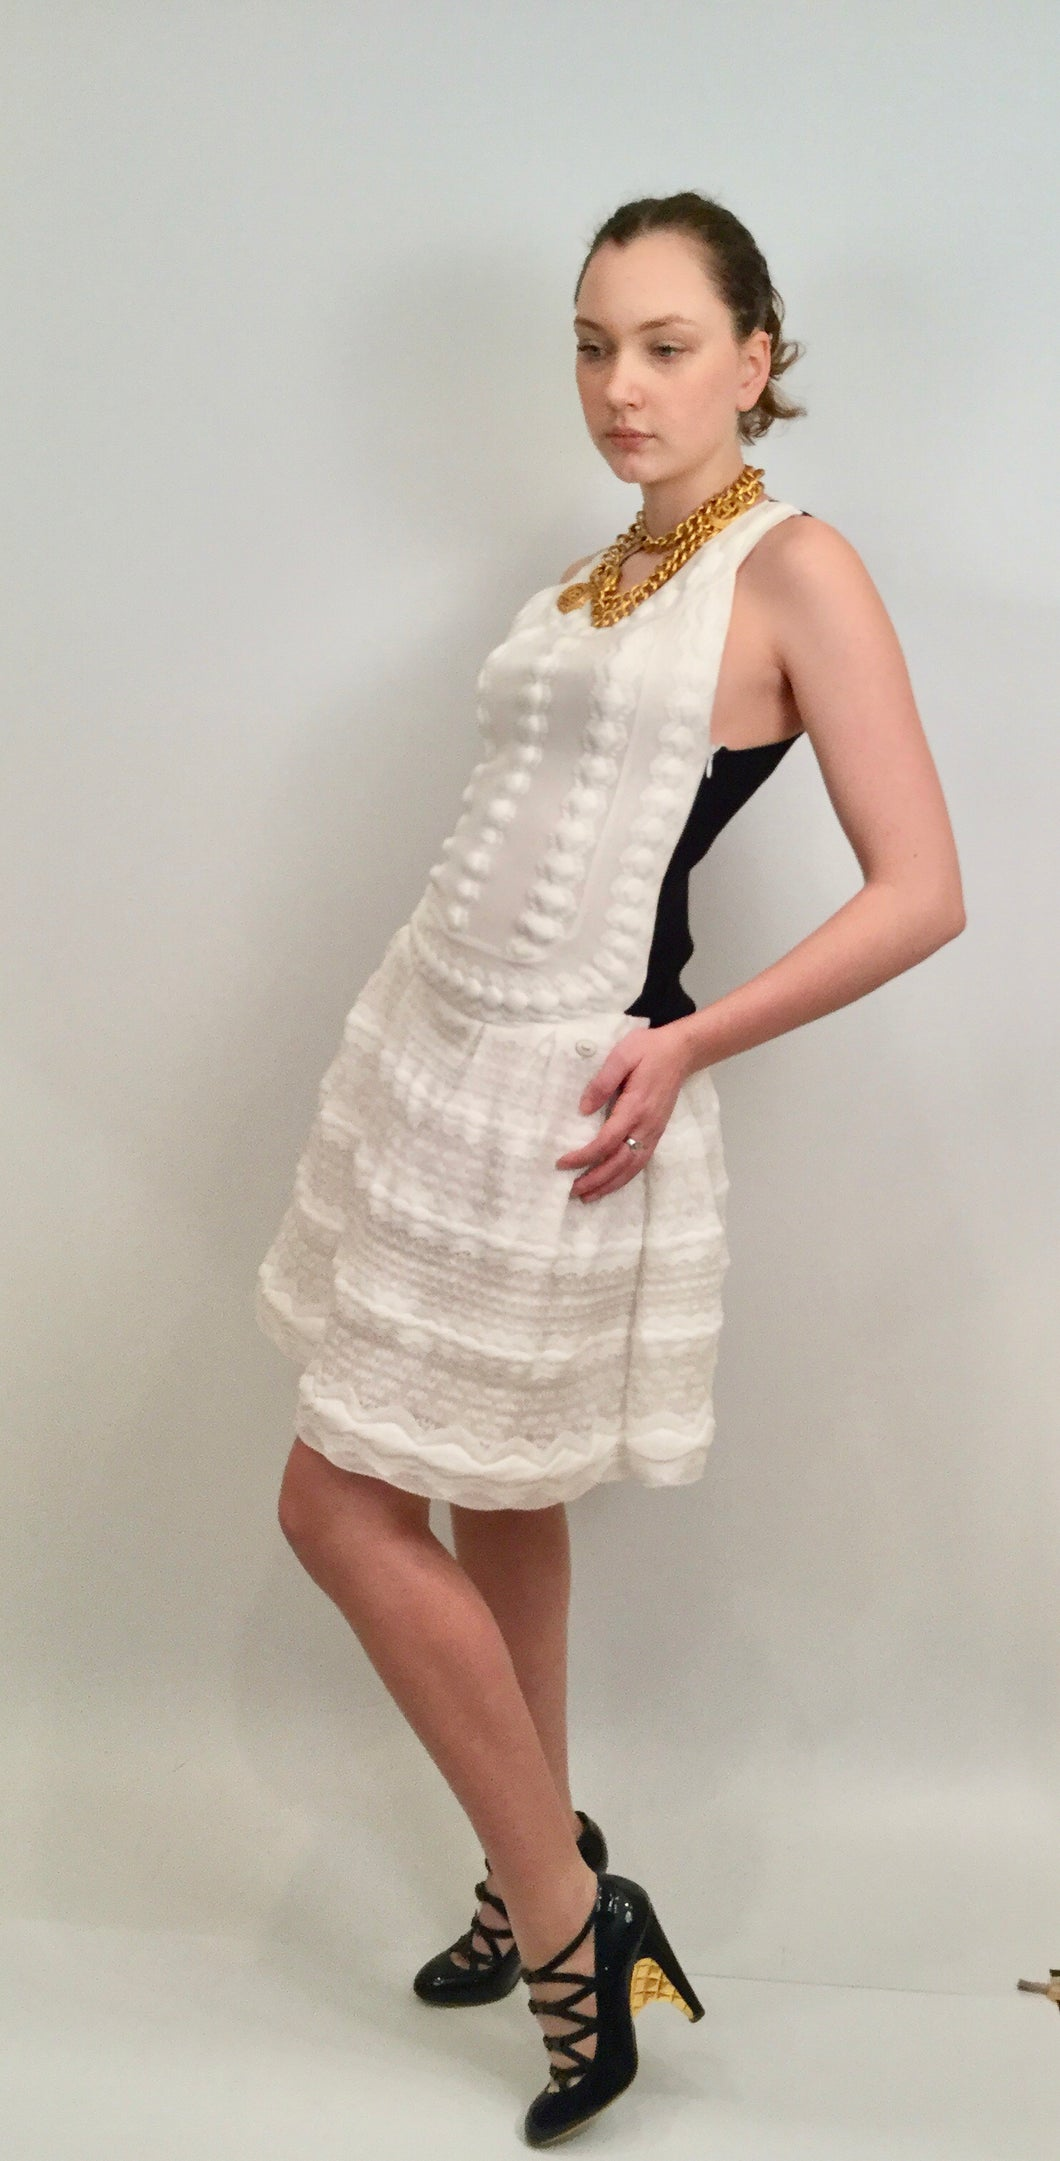 Chanel White and Black Lace Peplum Dress FR 38 US 4/6